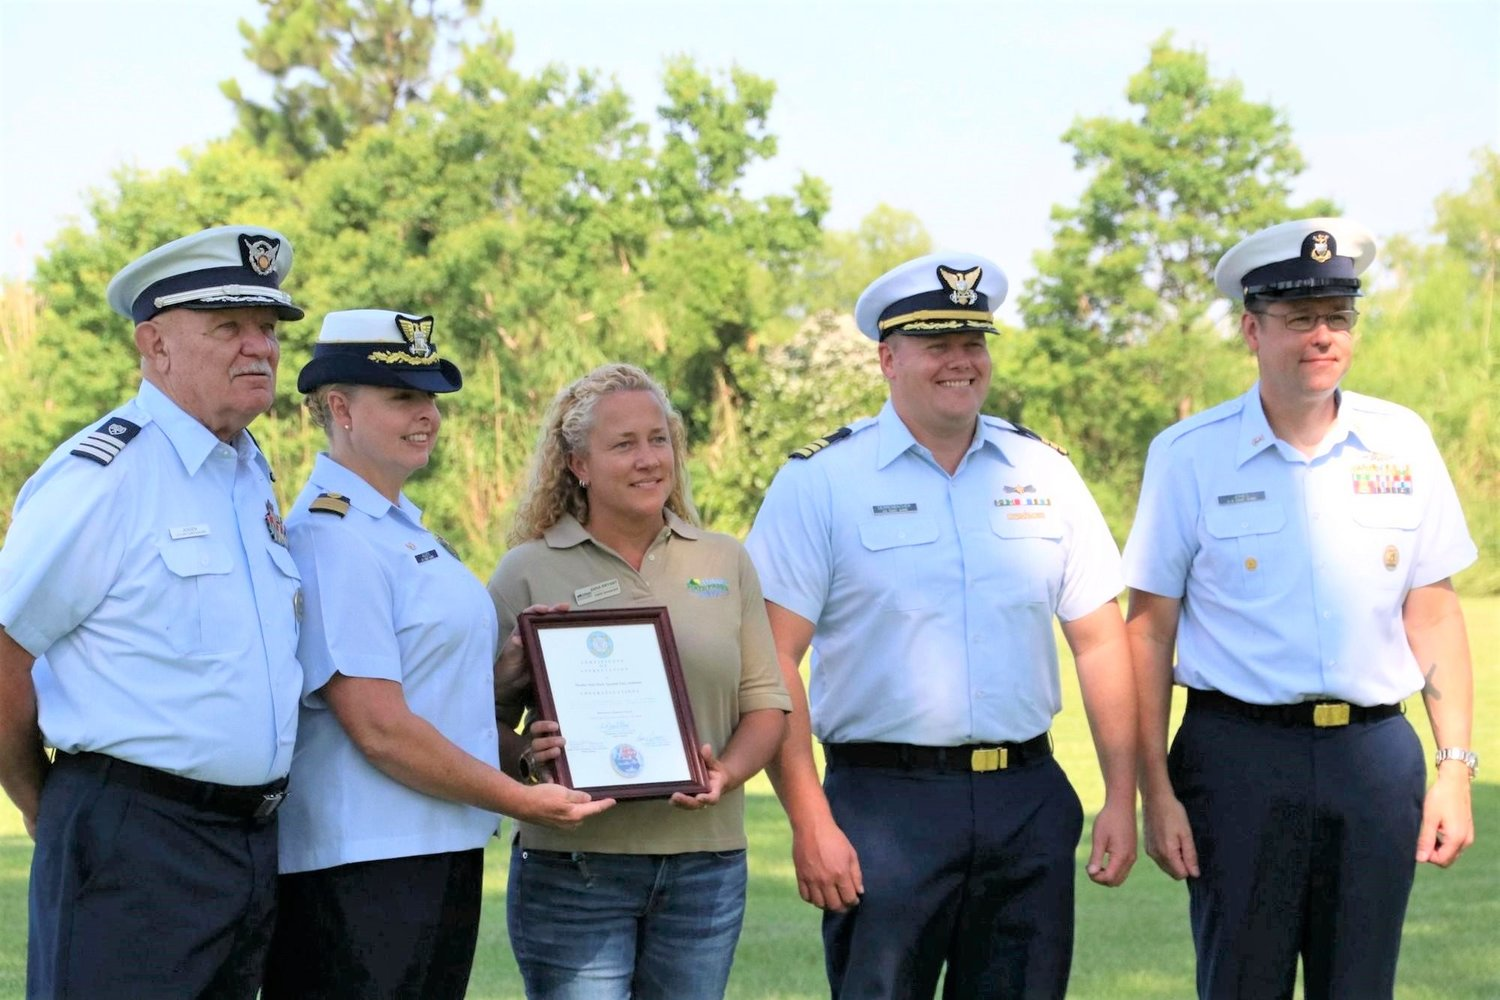 Sector Mobile Commanding Officer LaDonn Allen and other Coast Guard officers present Meaher State Park Superintendent Anna Bryant with a certificate of appreciation.